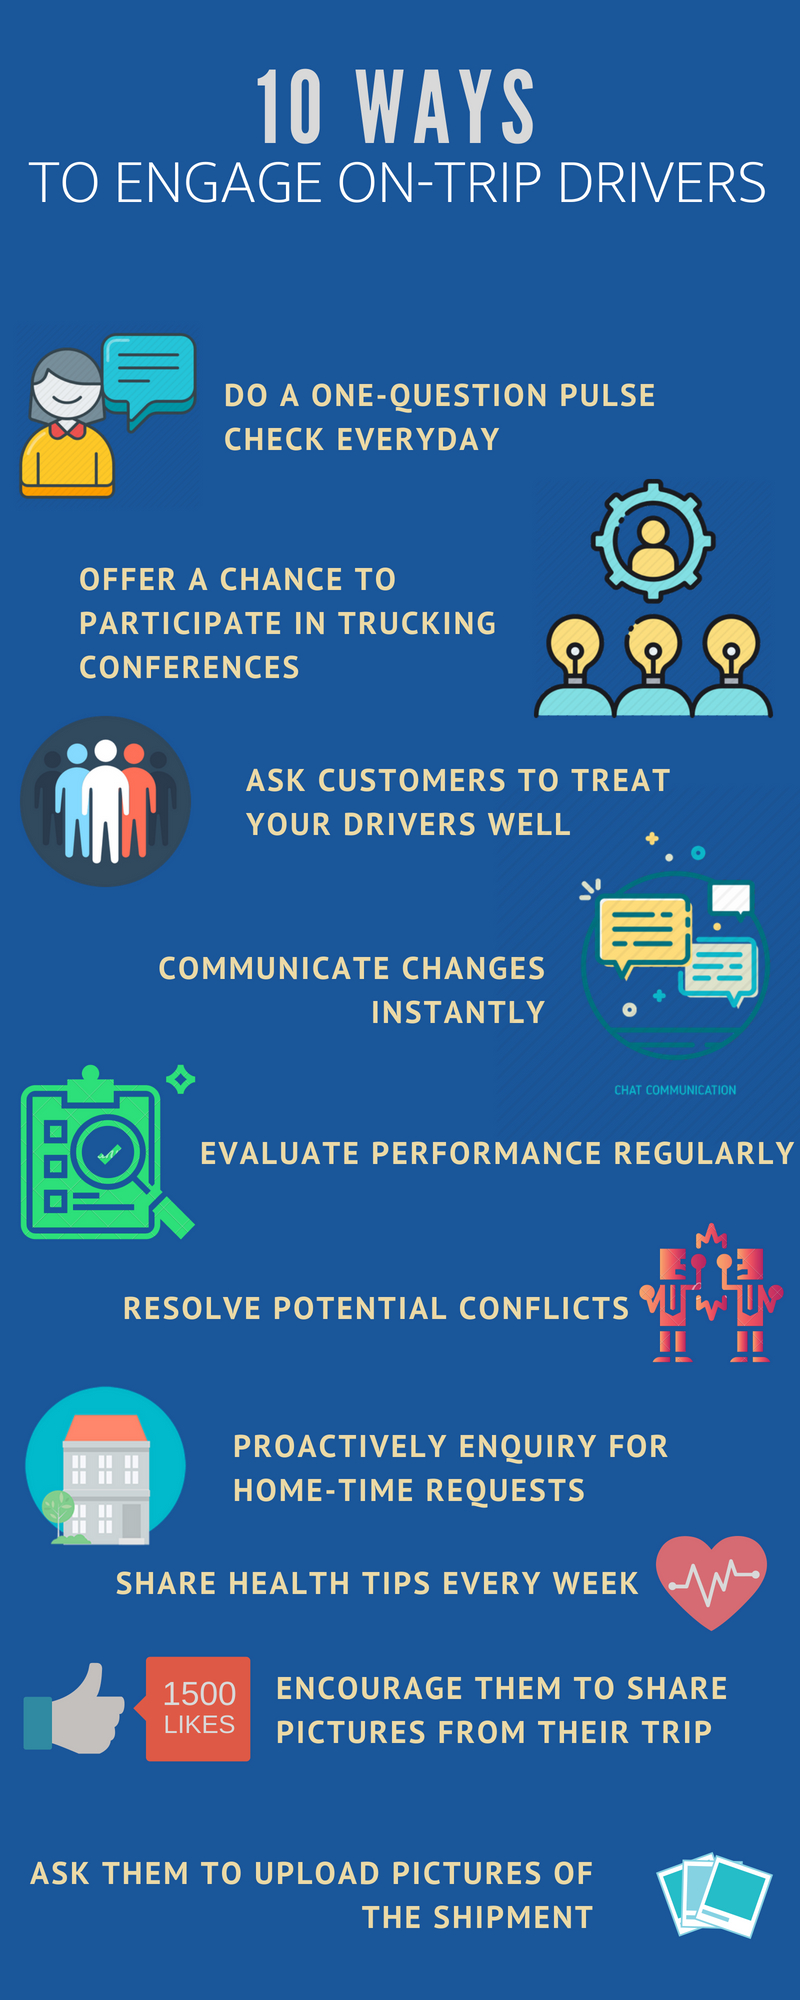 What are you doing to guarantee truck driver retention? Engage them beyond just the onboarding period.